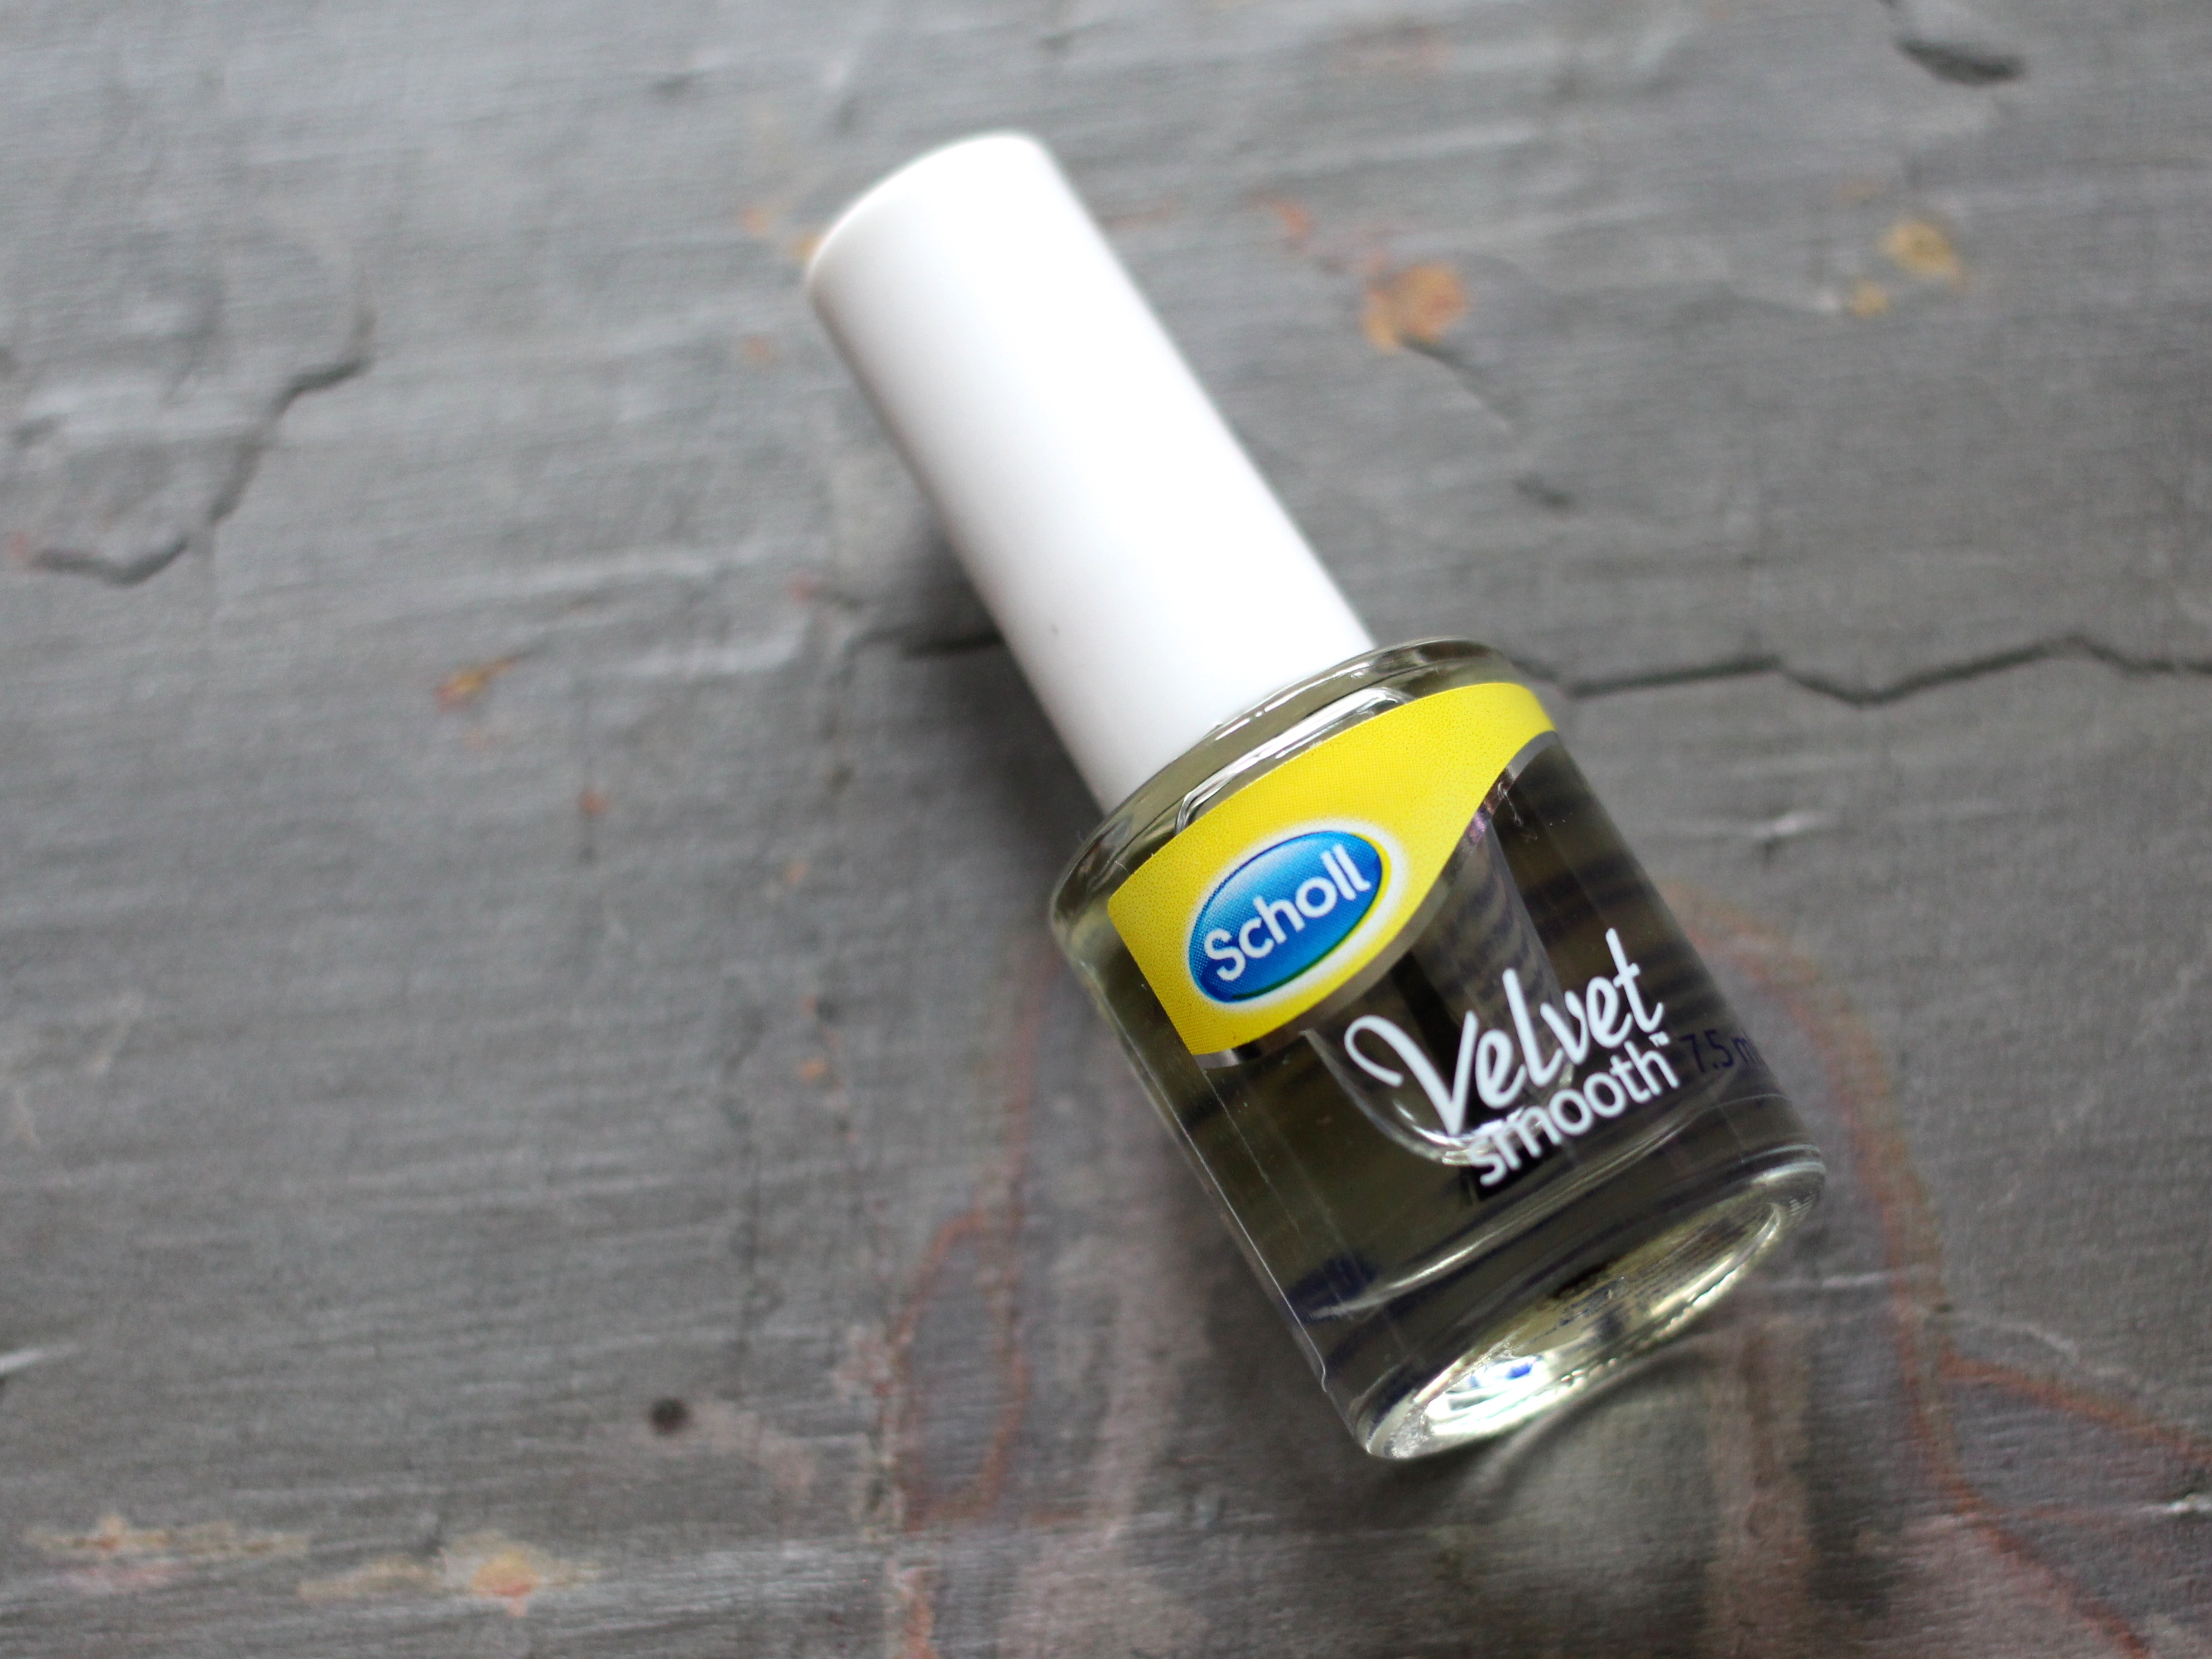 Scholl Velvet Smooth Cuticle Oil